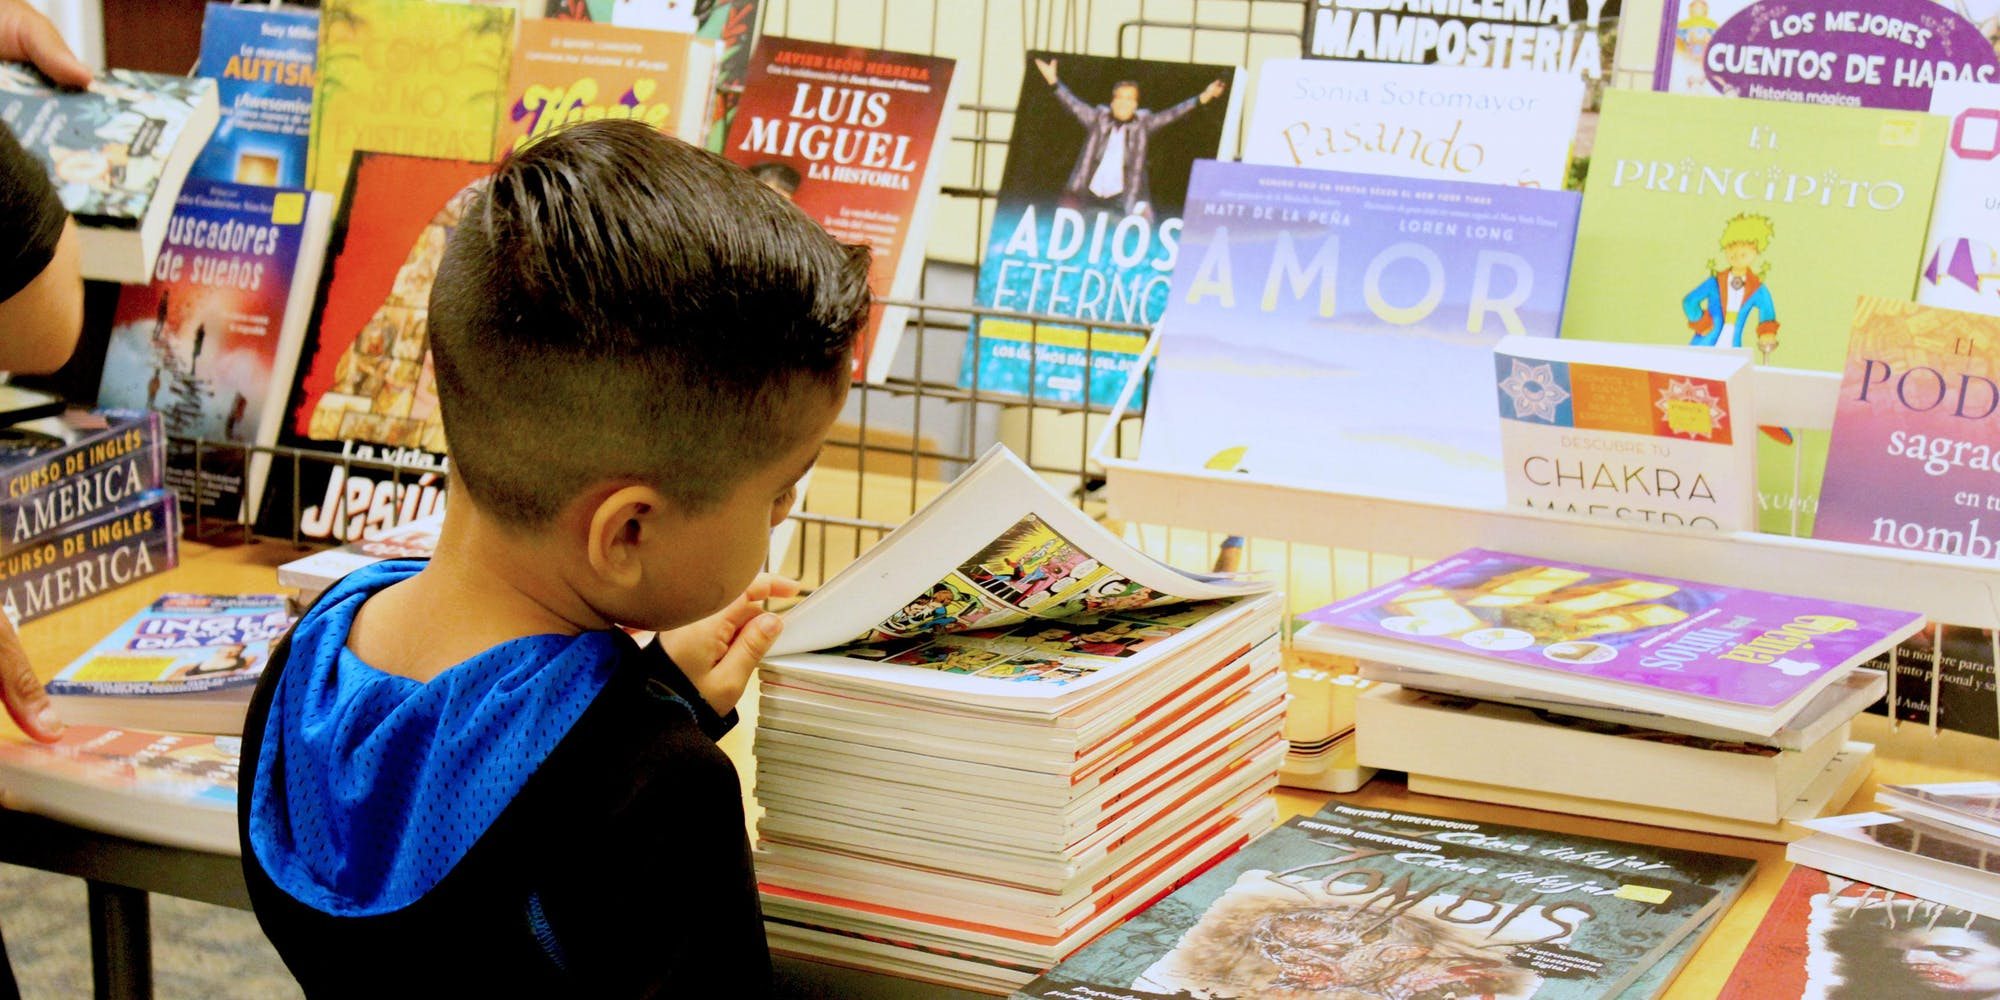 Little boy browsing books